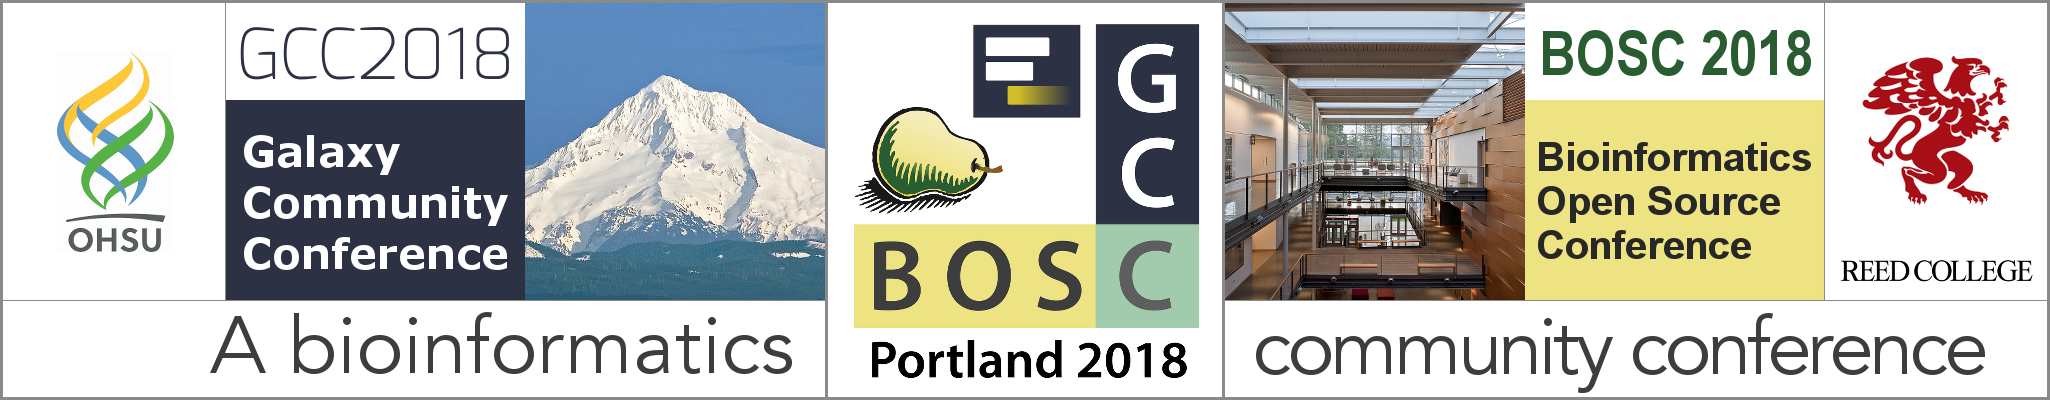 GCC2018 + BOSC 2018: The Bioinformatics Community Conference